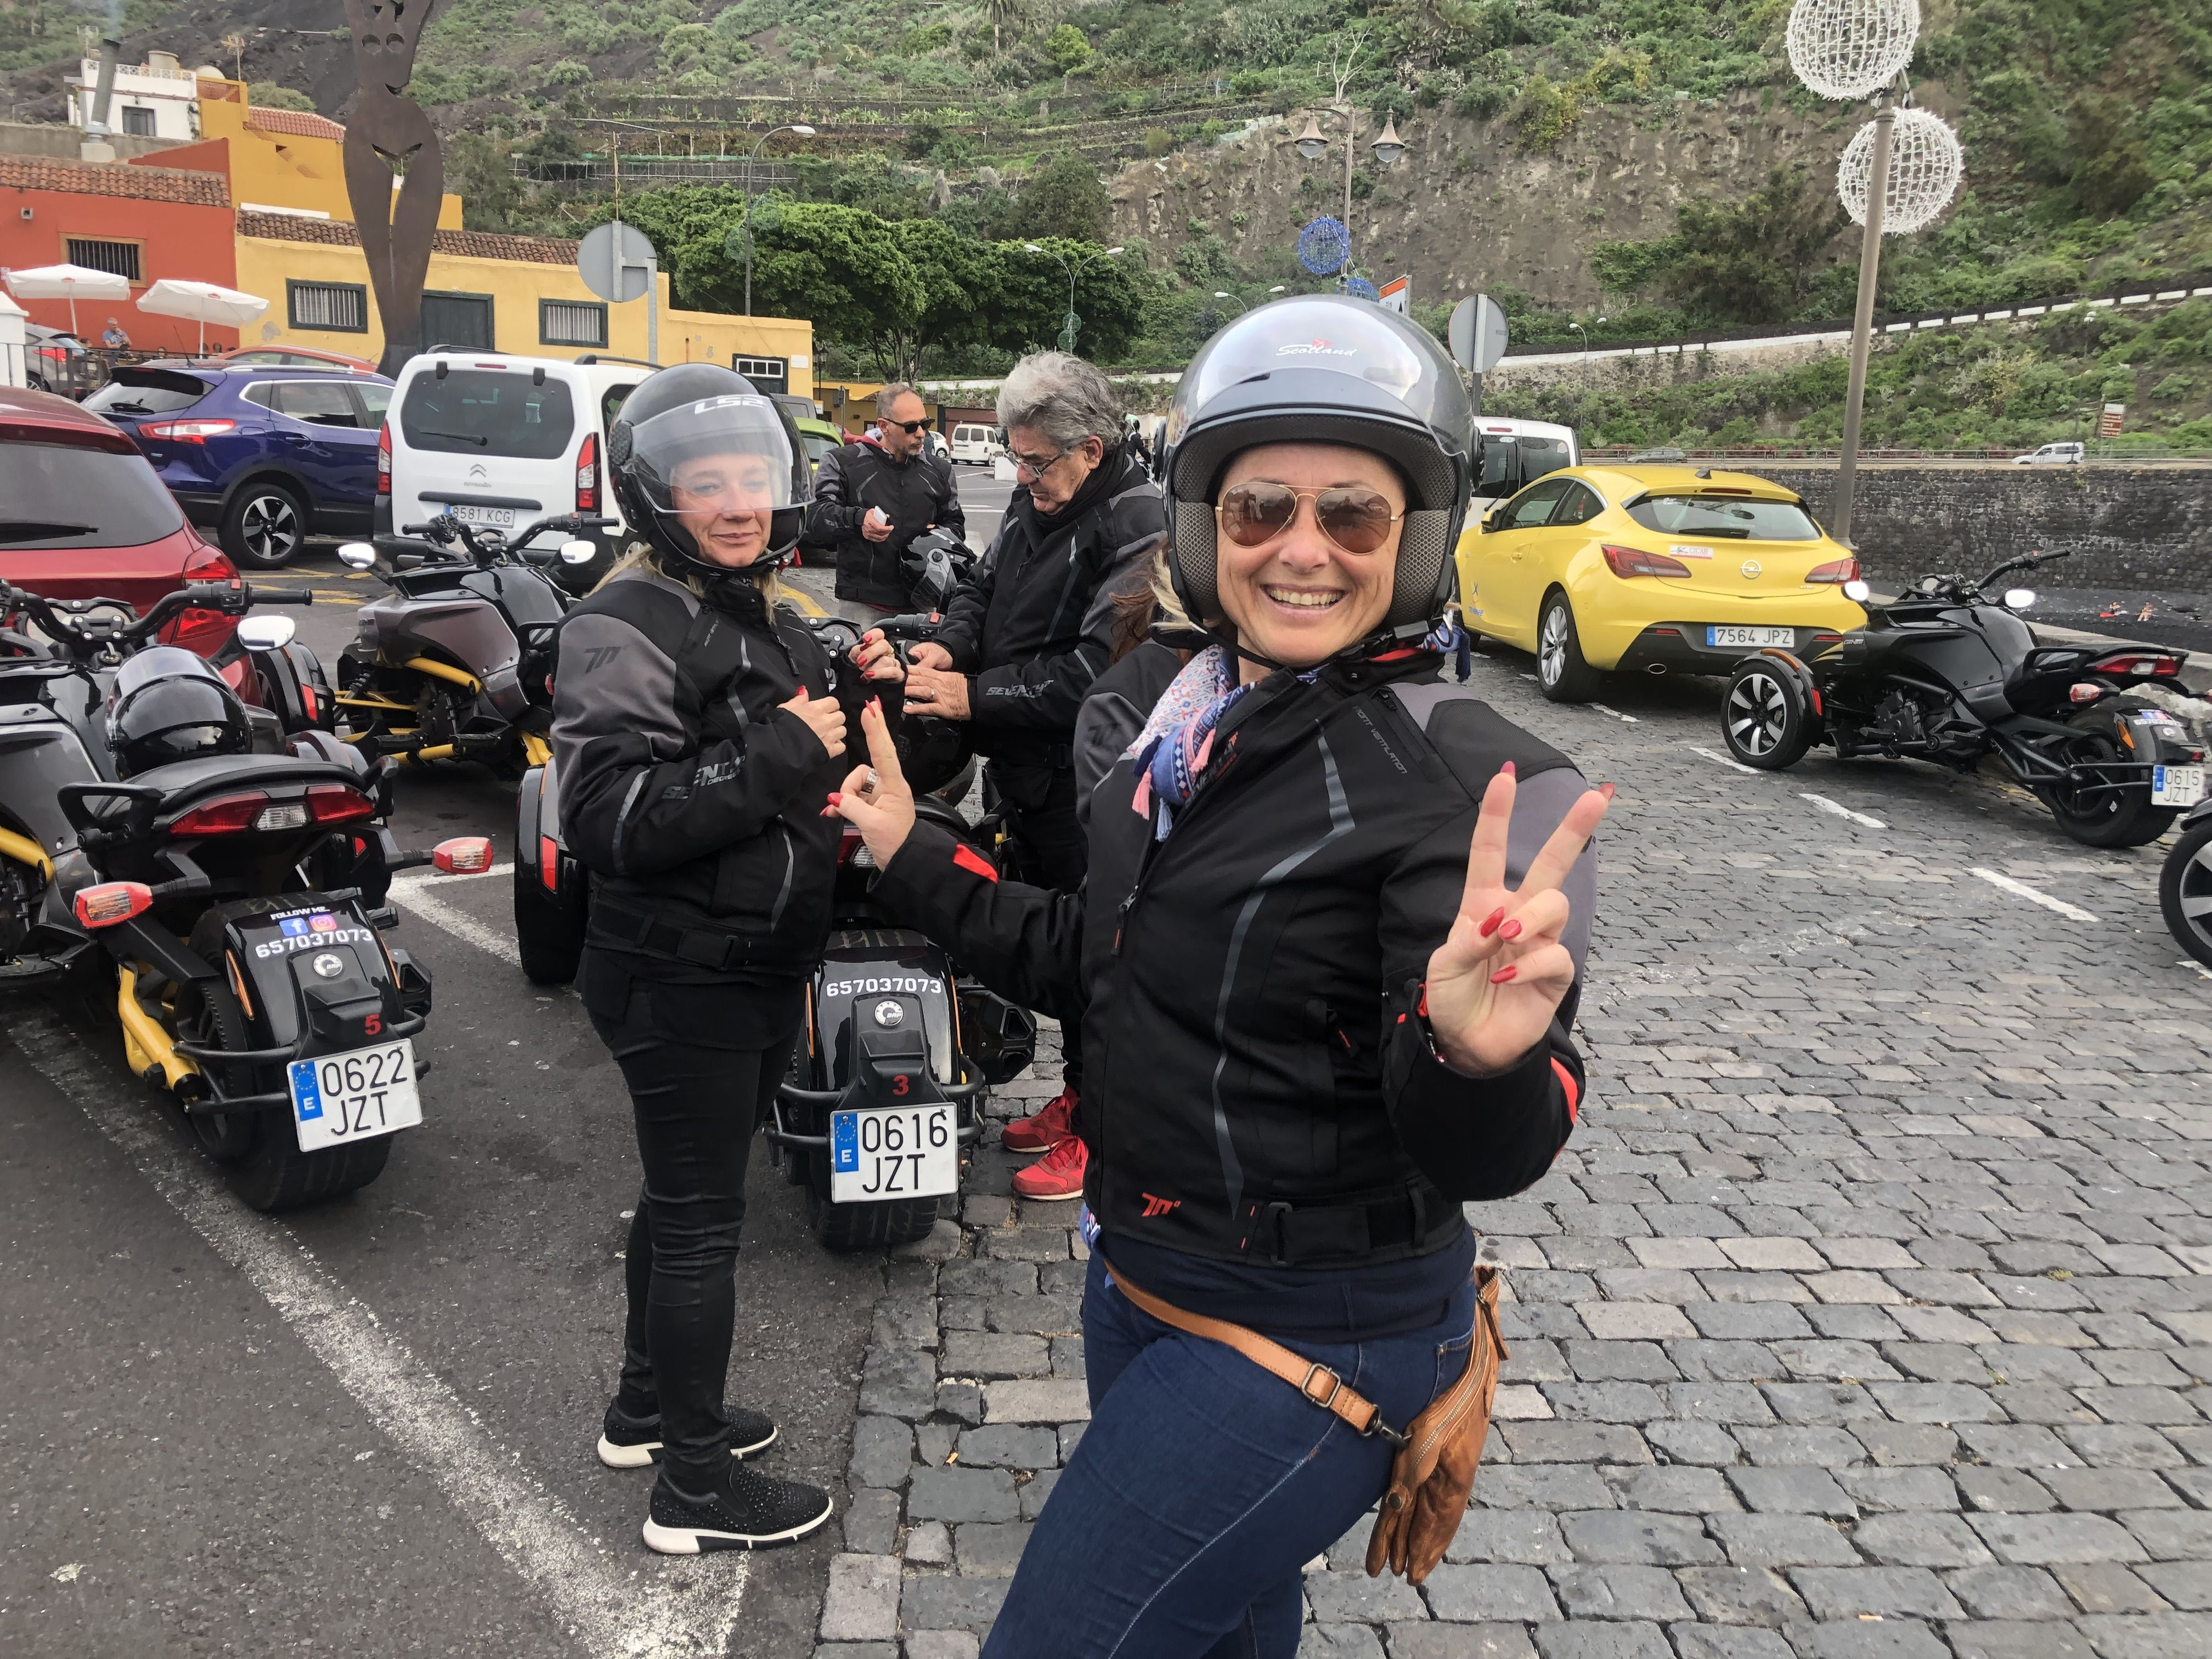 Motorcycle rental in Tenerife